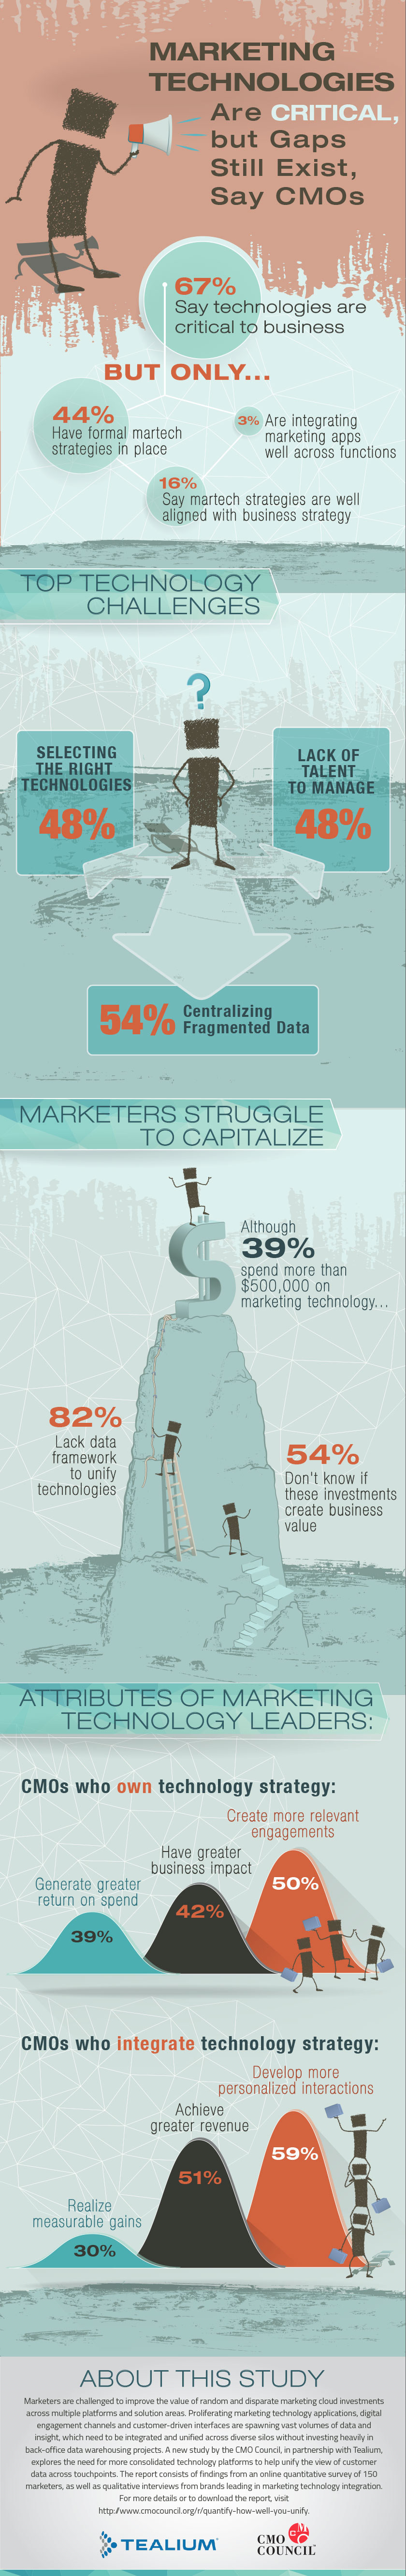 MarketingTechCriticalButGapsExist_Infographic-Final_10-16.jpg